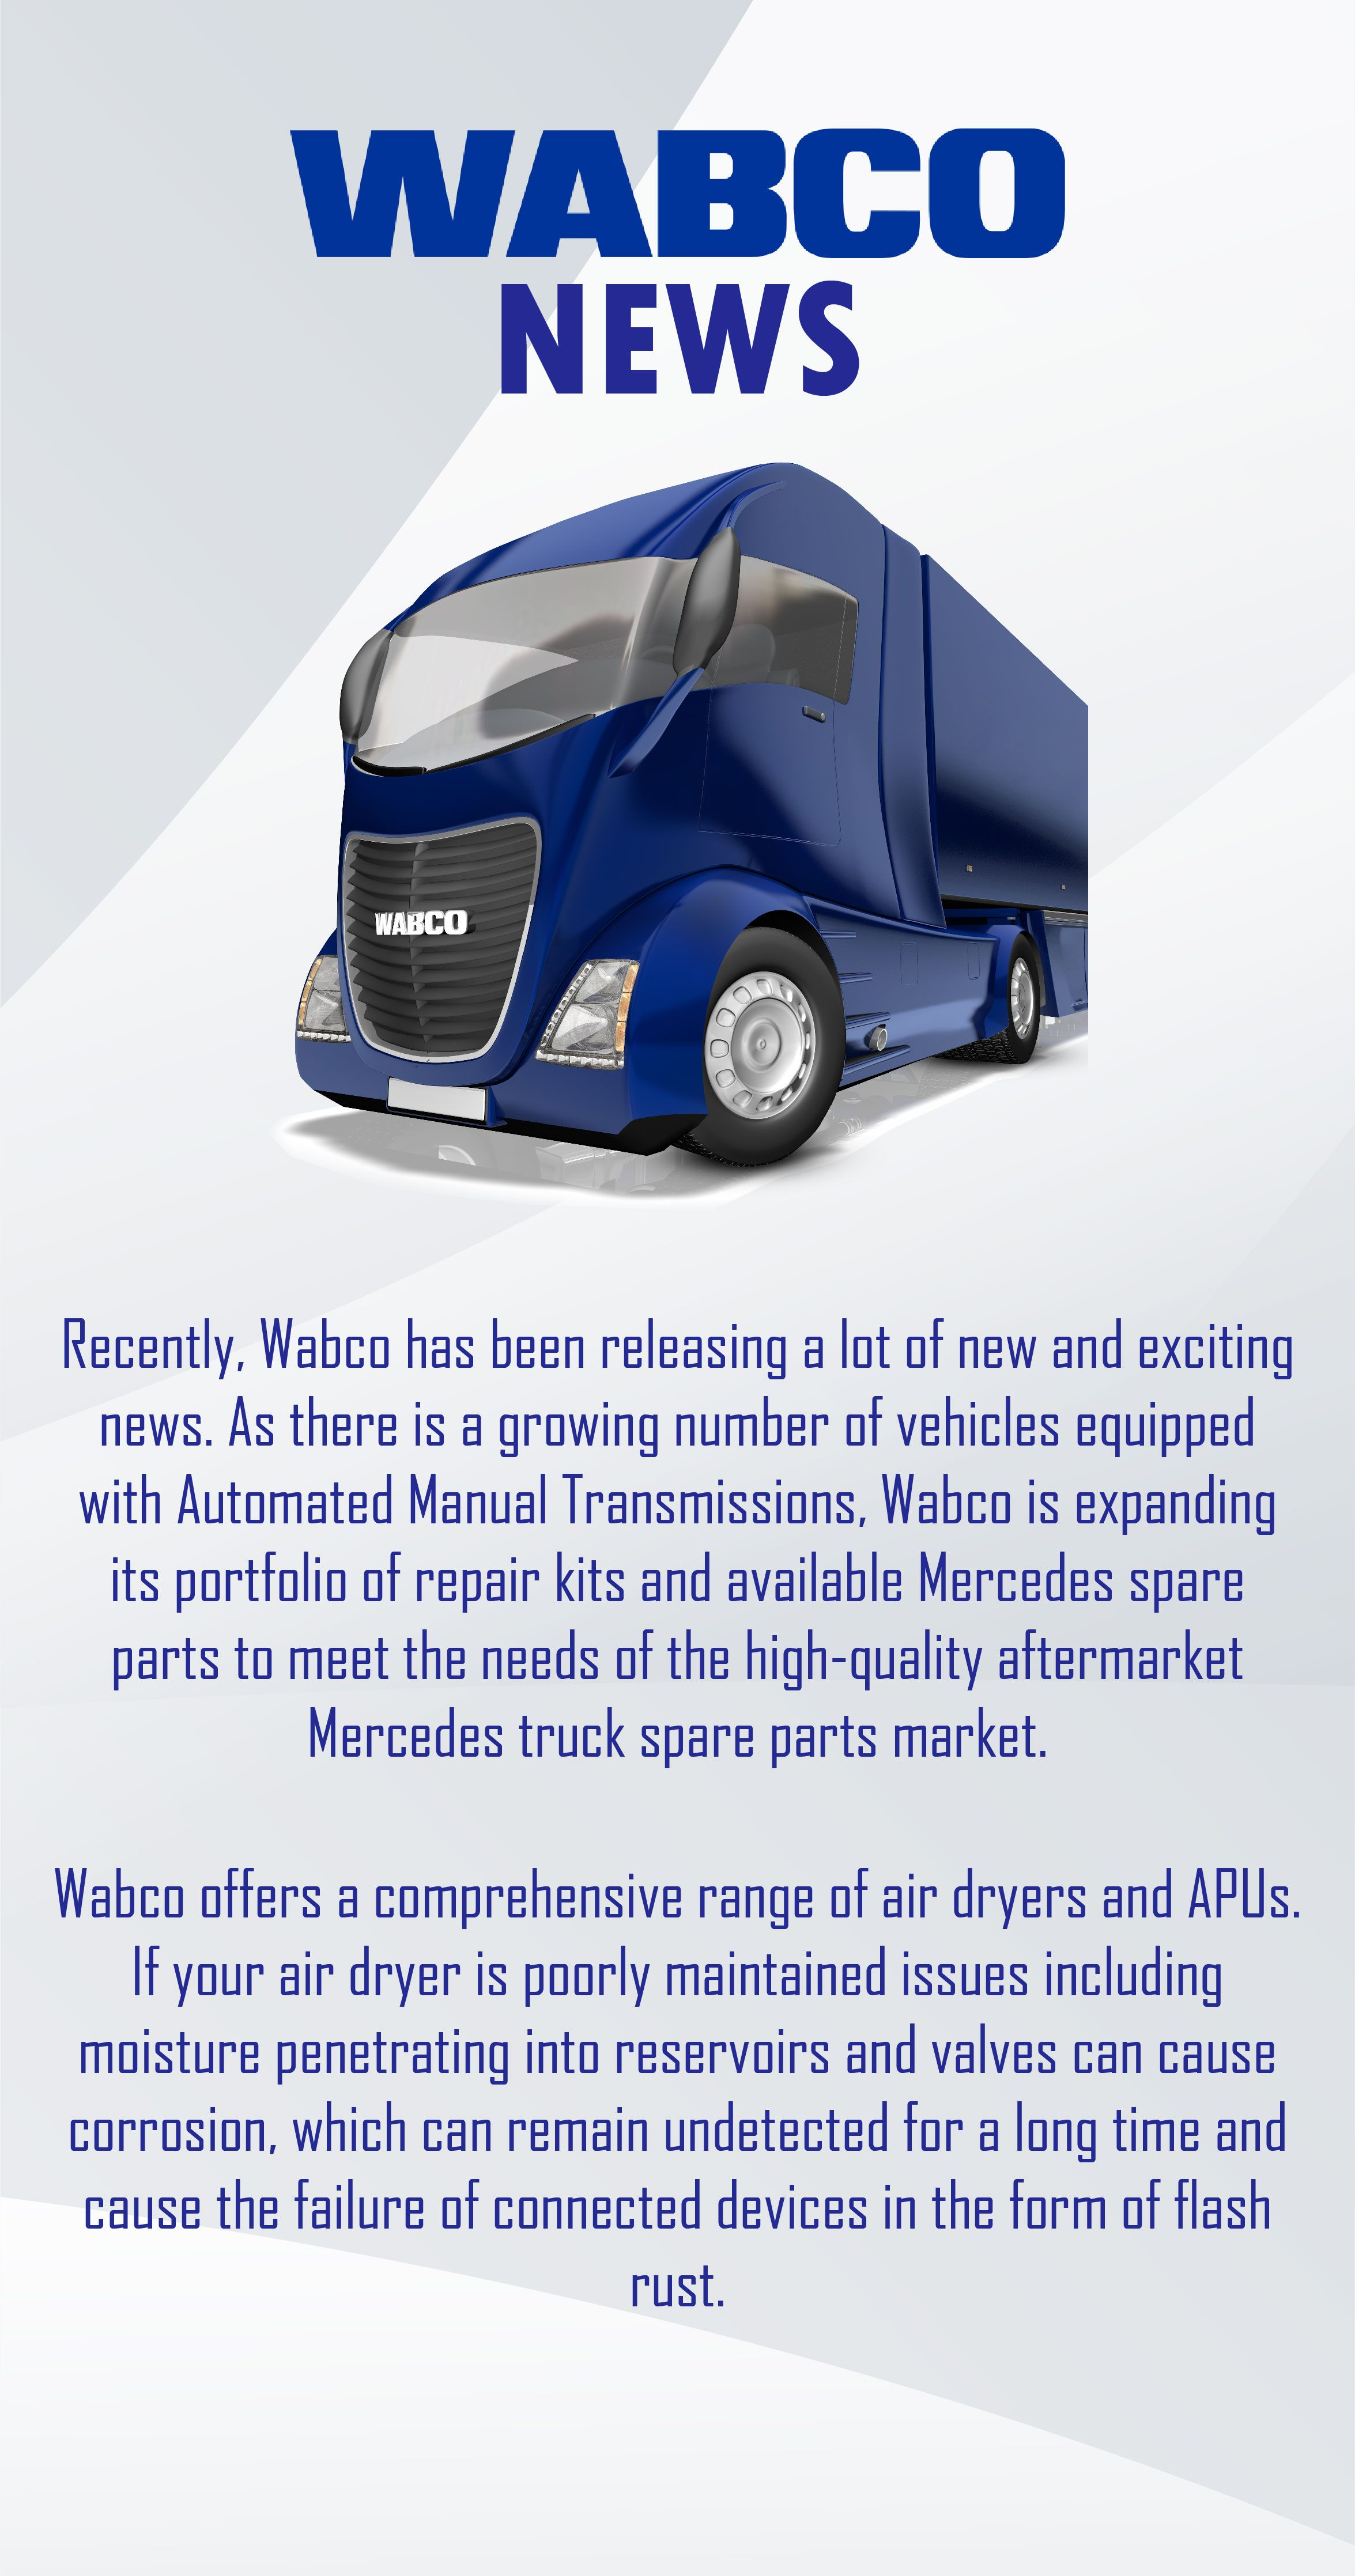 The Wabco has released an exciting news that Wabco is going to expand its  collection of